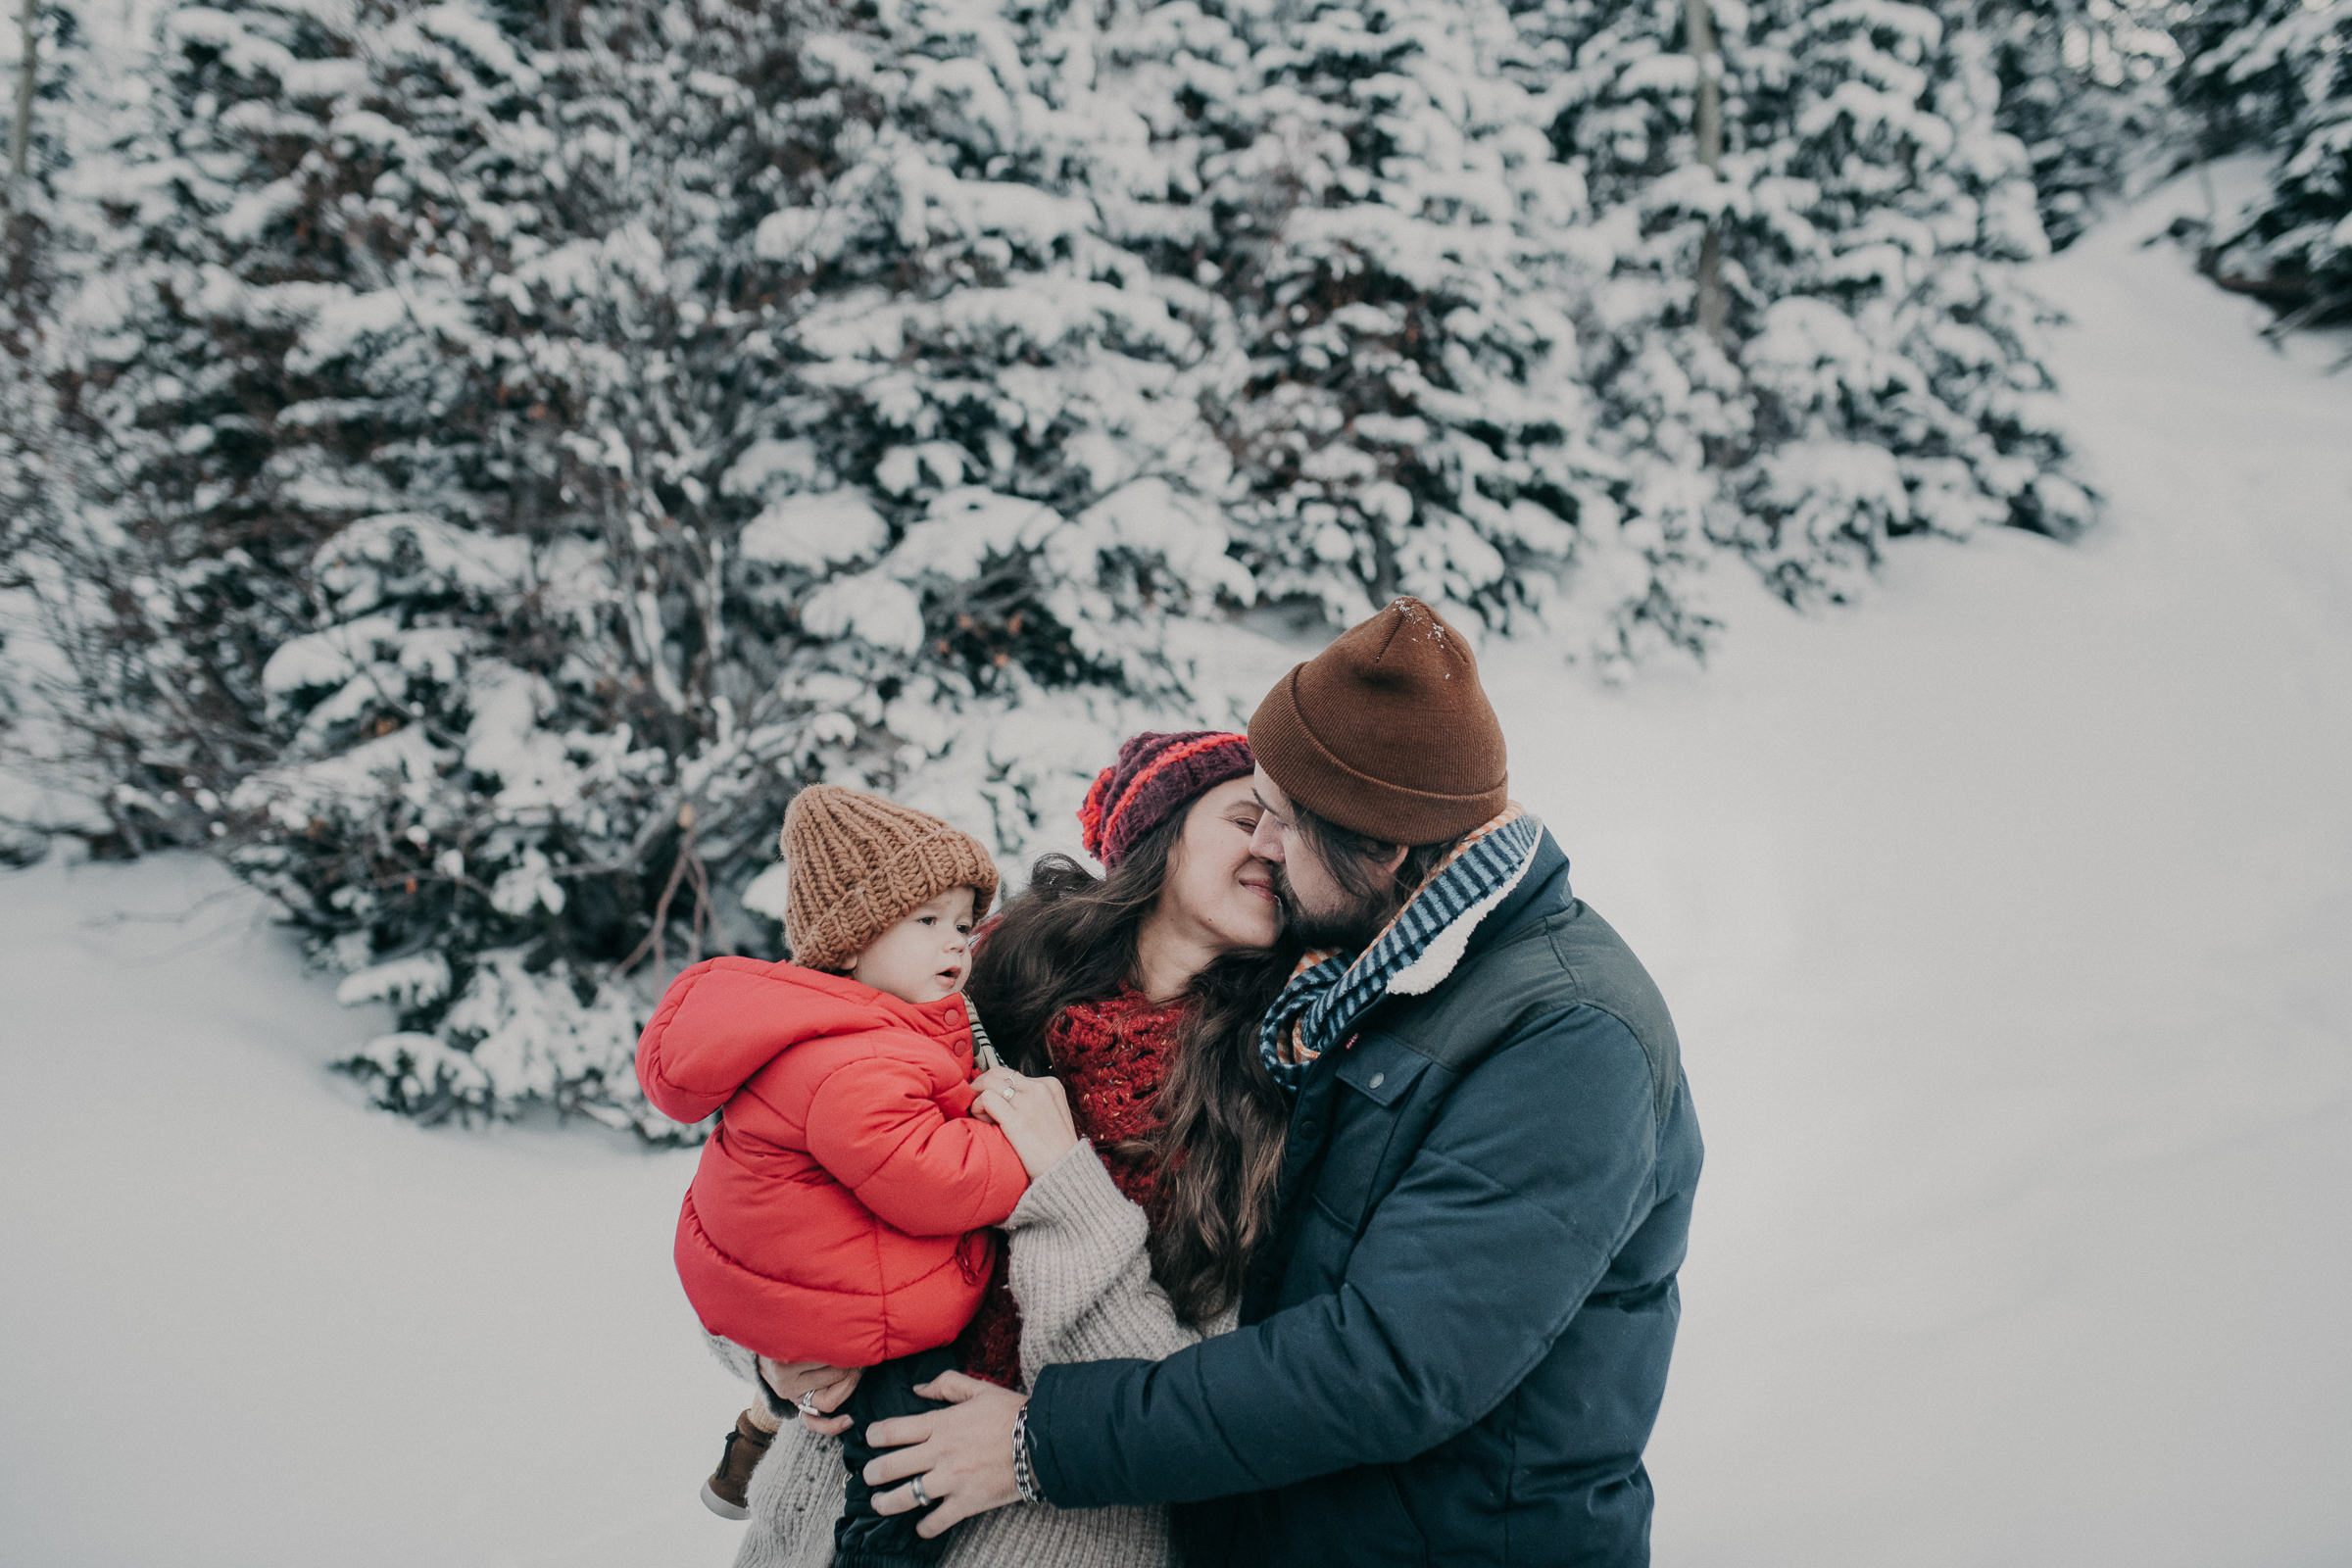 Family picture in snowy mountain